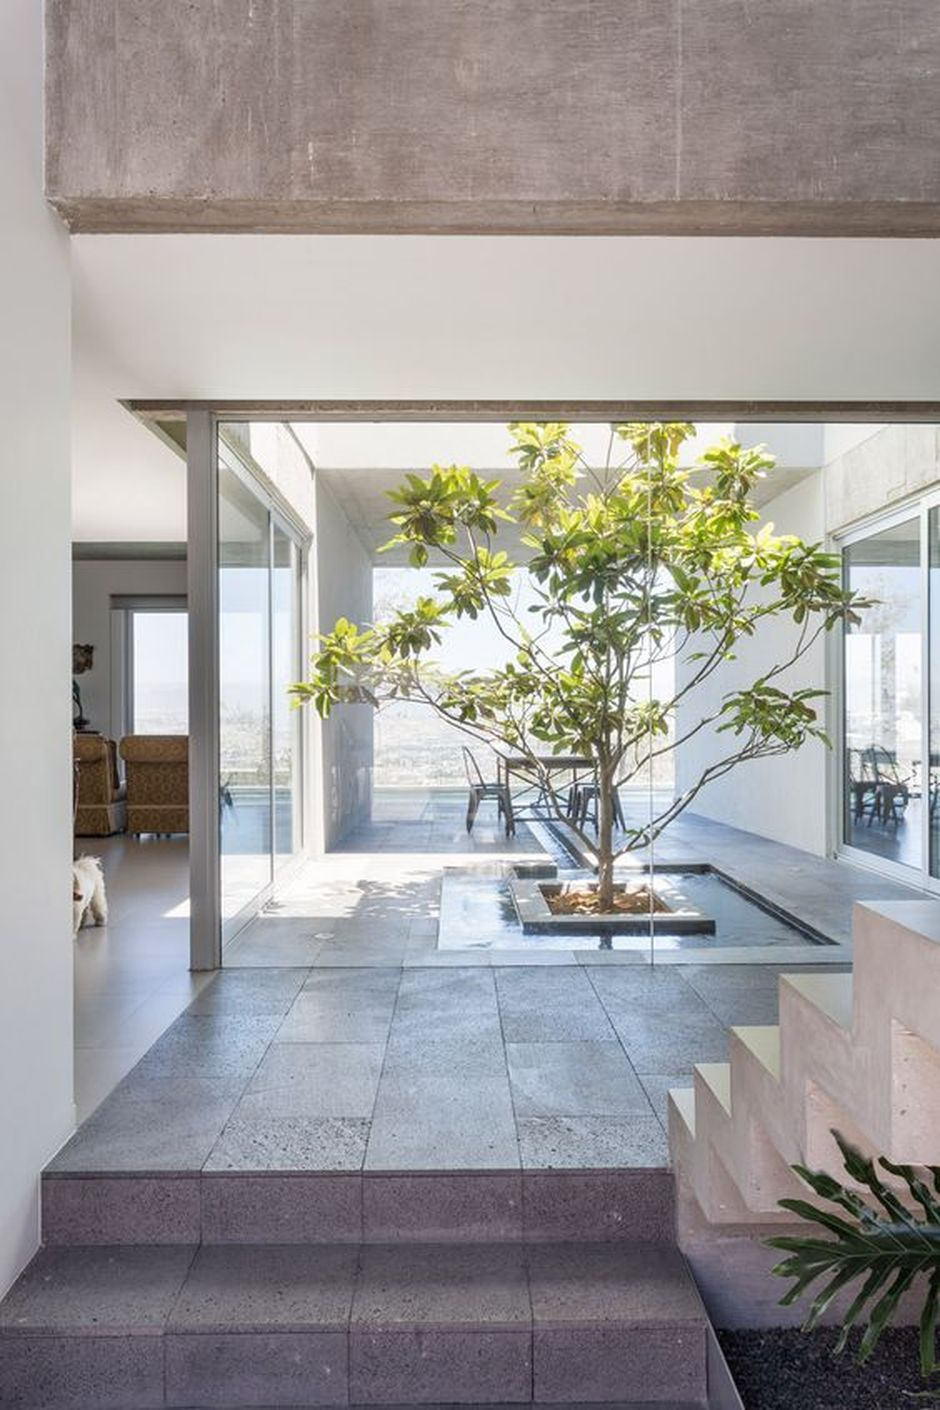 Amazing Artistic Tree Inside House Interior Designs Concrete House Indoor Courtyard Courtyard House